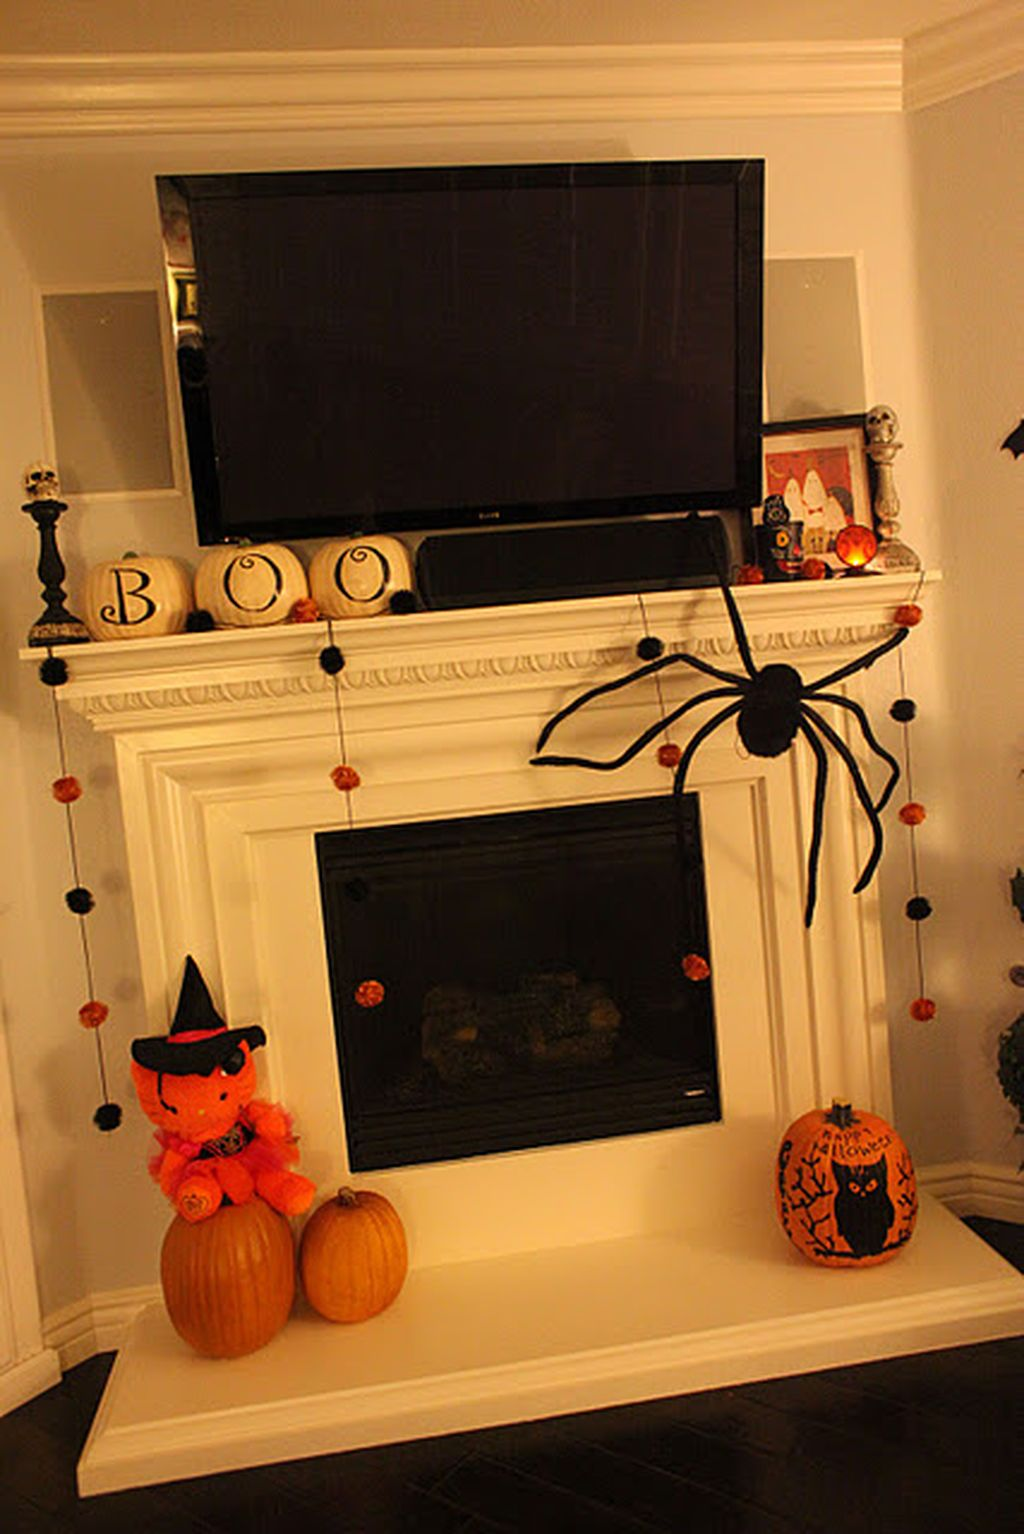 Scary But Classy Halloween Fireplace Decoration Ideas 22